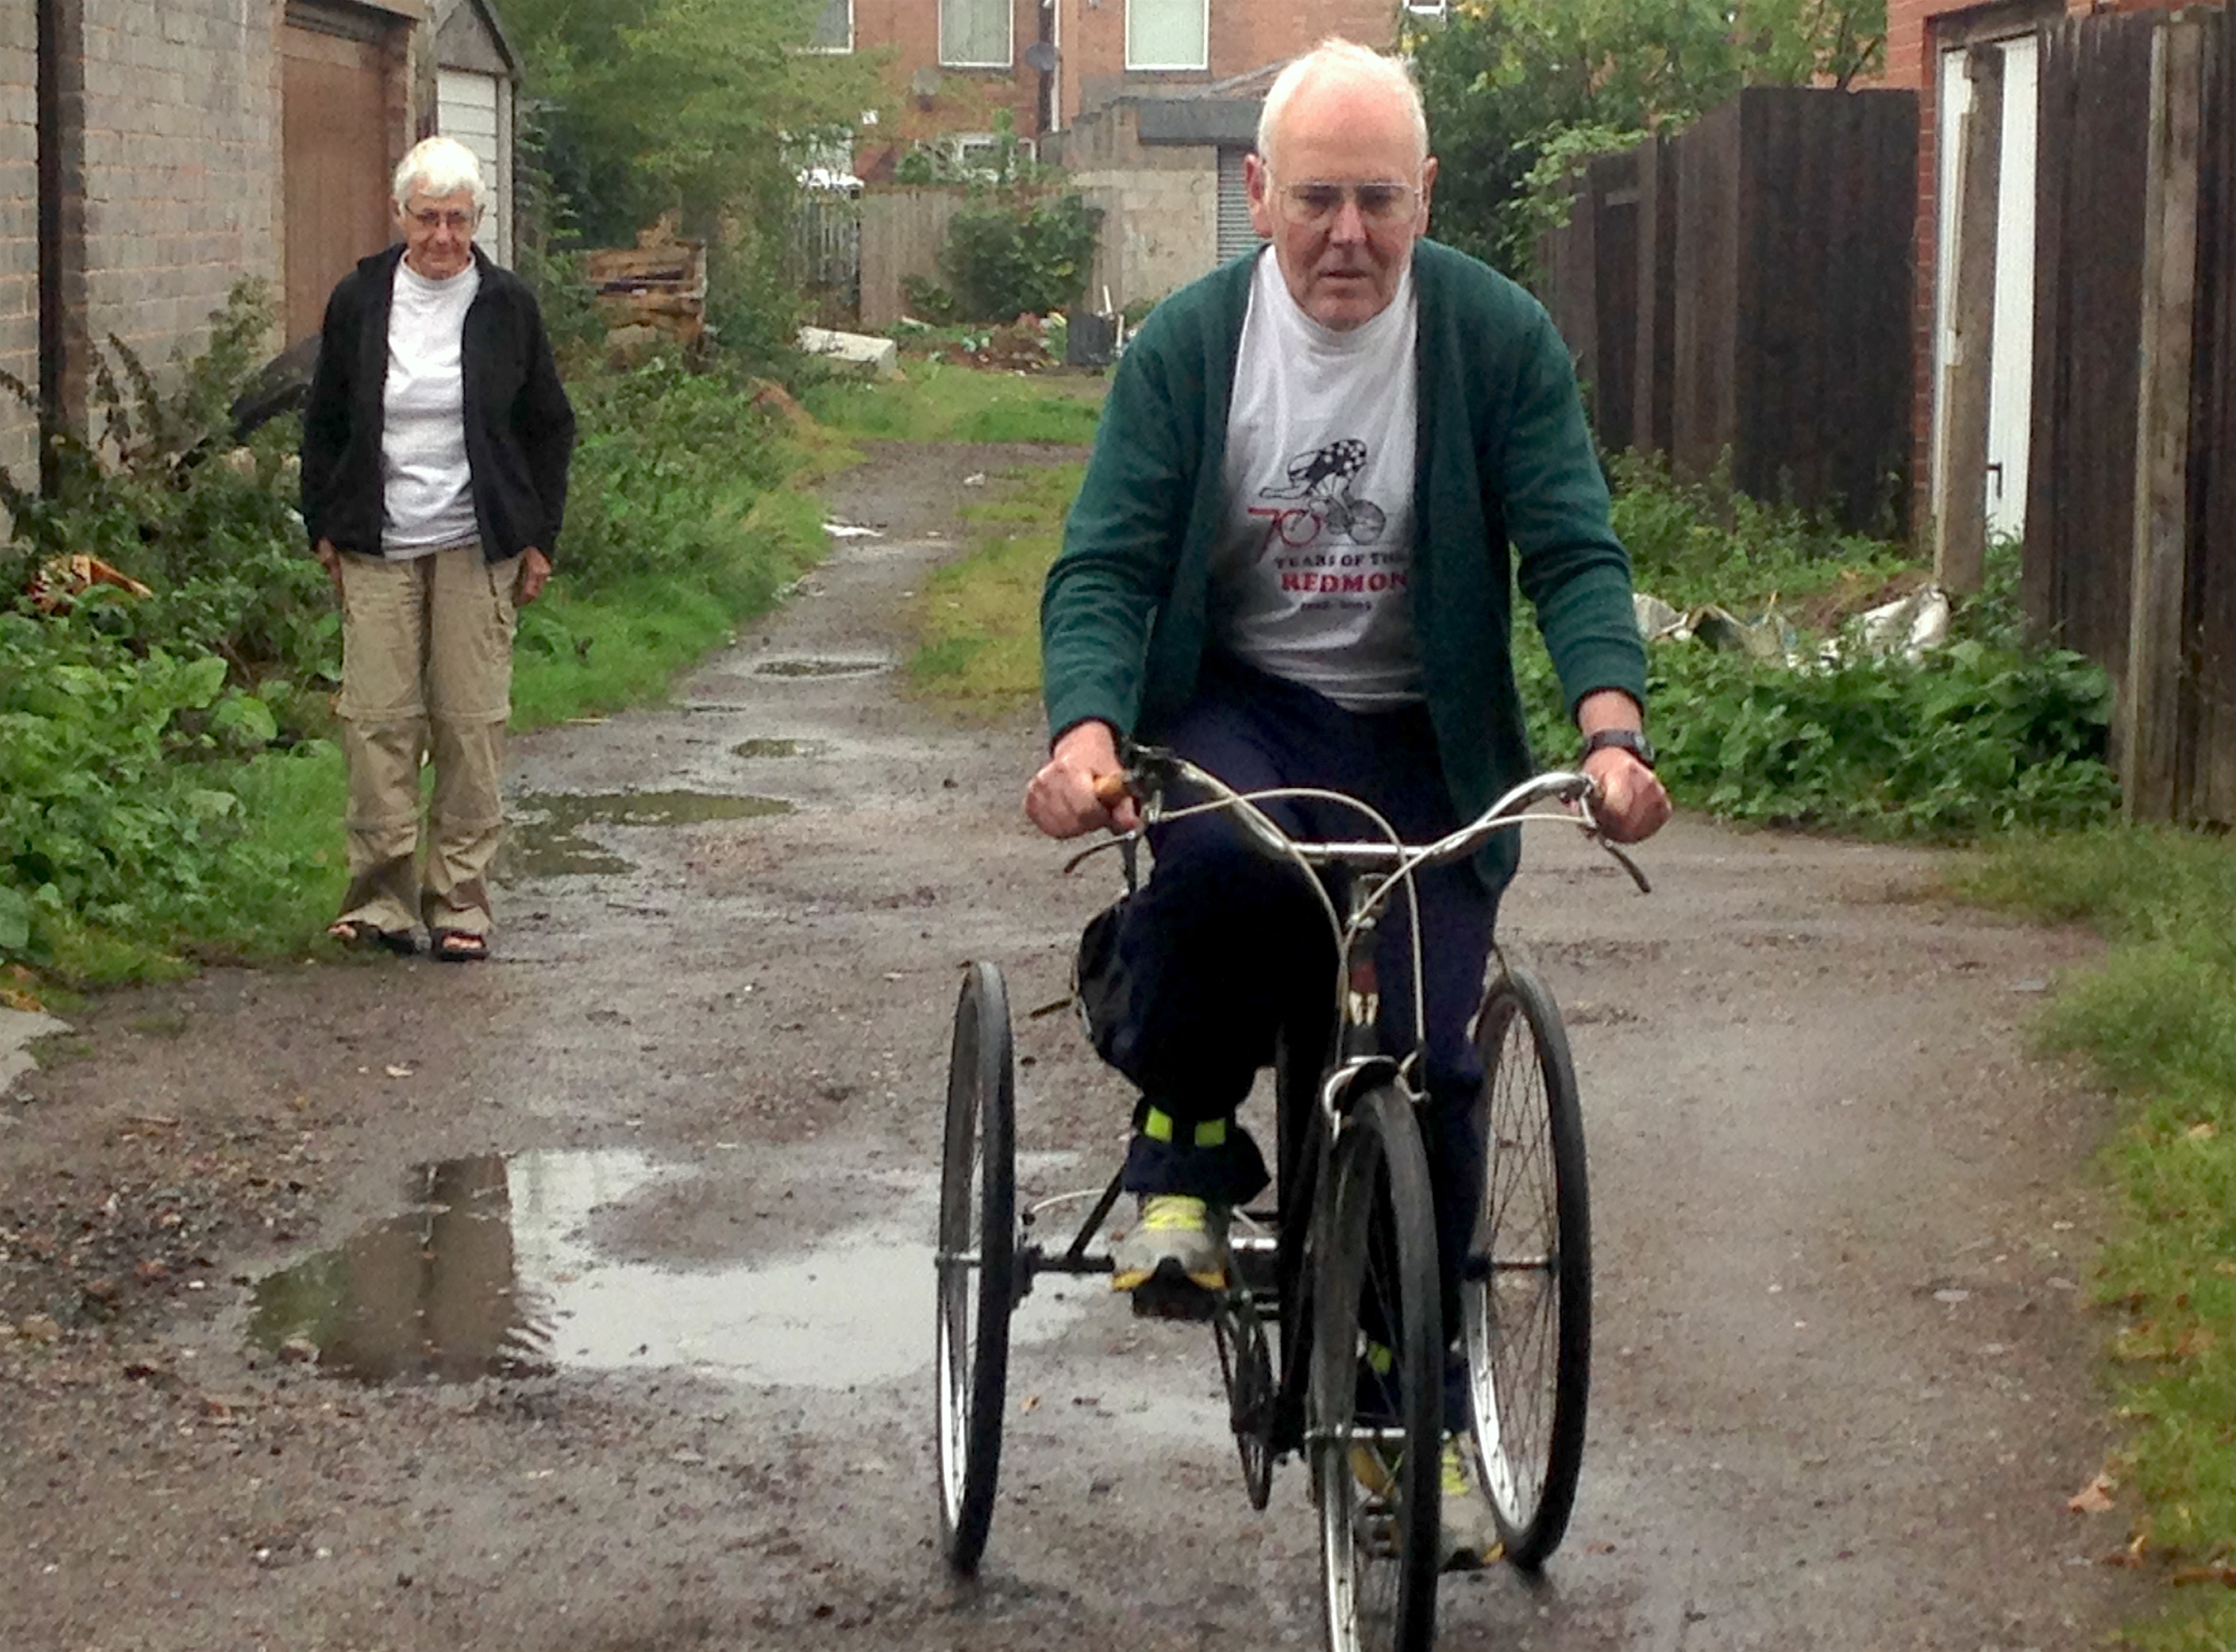 Howard Boyd on his tricycle